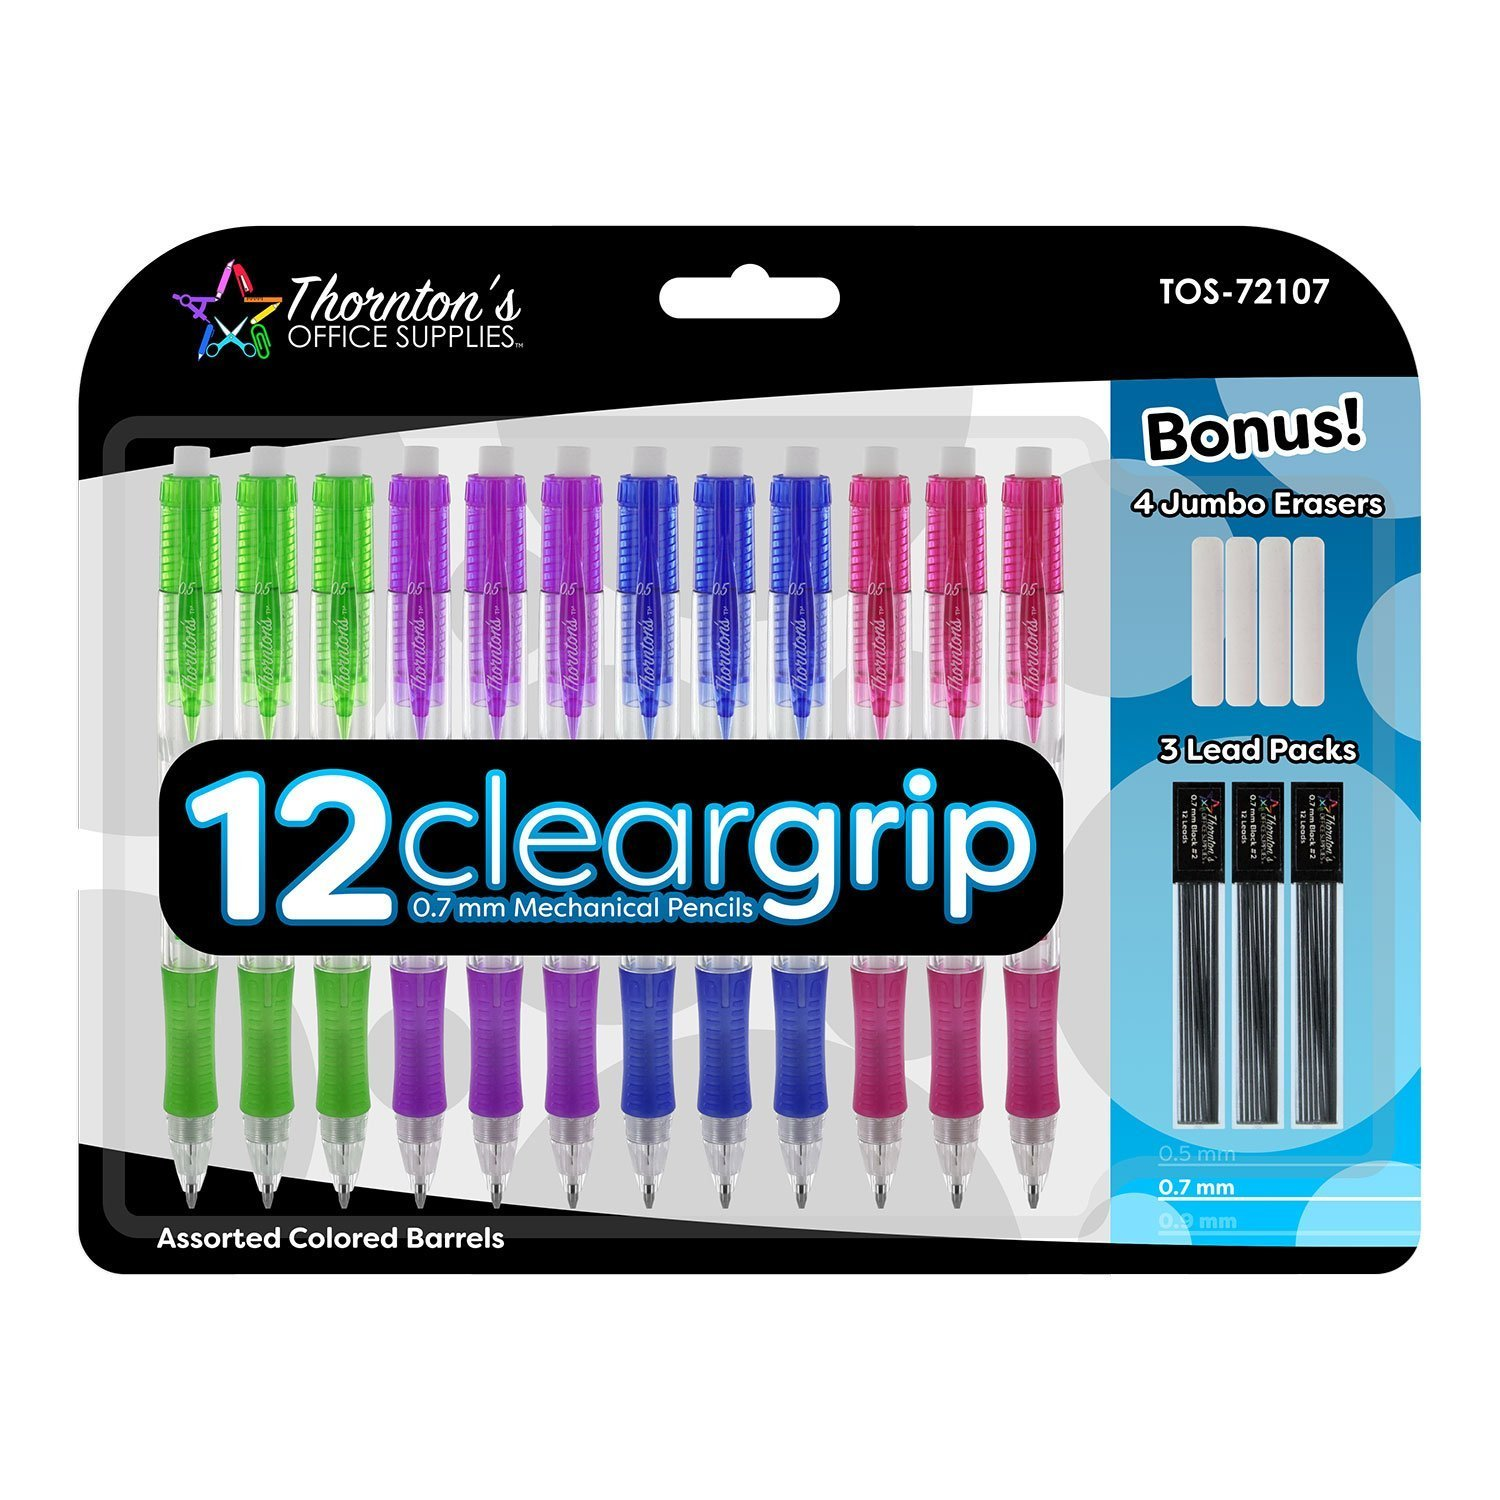 Thornton's Office Supplies ClearGrip Mechanical Pencil Starter Set, 0.7mm, Assorted Colors, Pack of 12